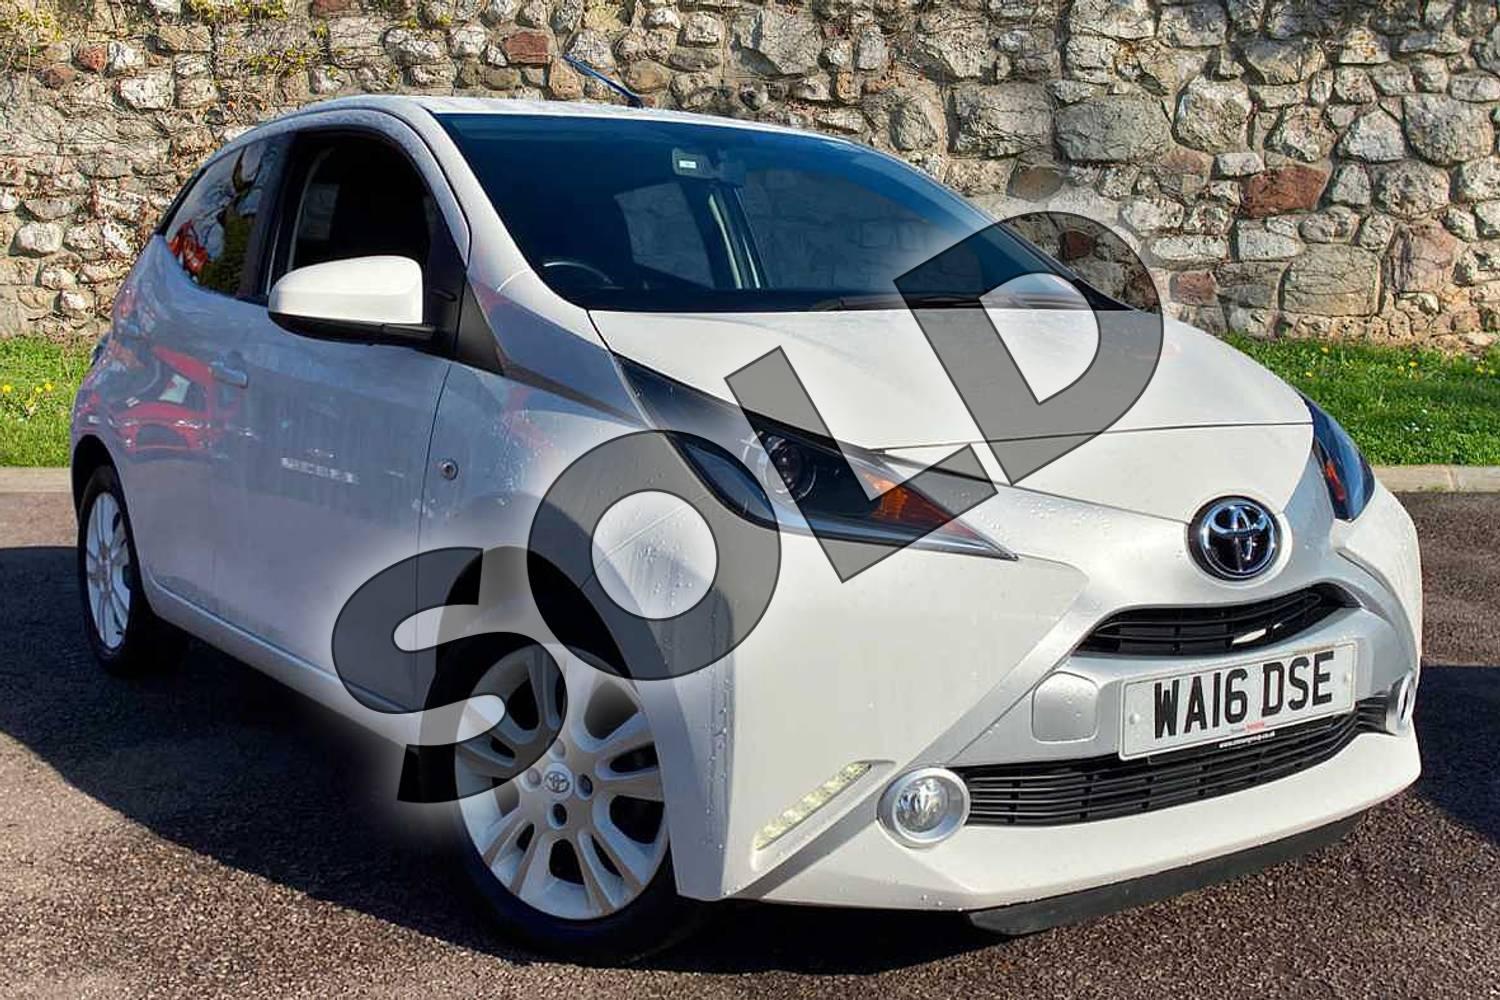 2016 Toyota AYGO Hatchback Special Editions 1.0 VVT-i X-Pure 5dr in White at Listers Toyota Coventry